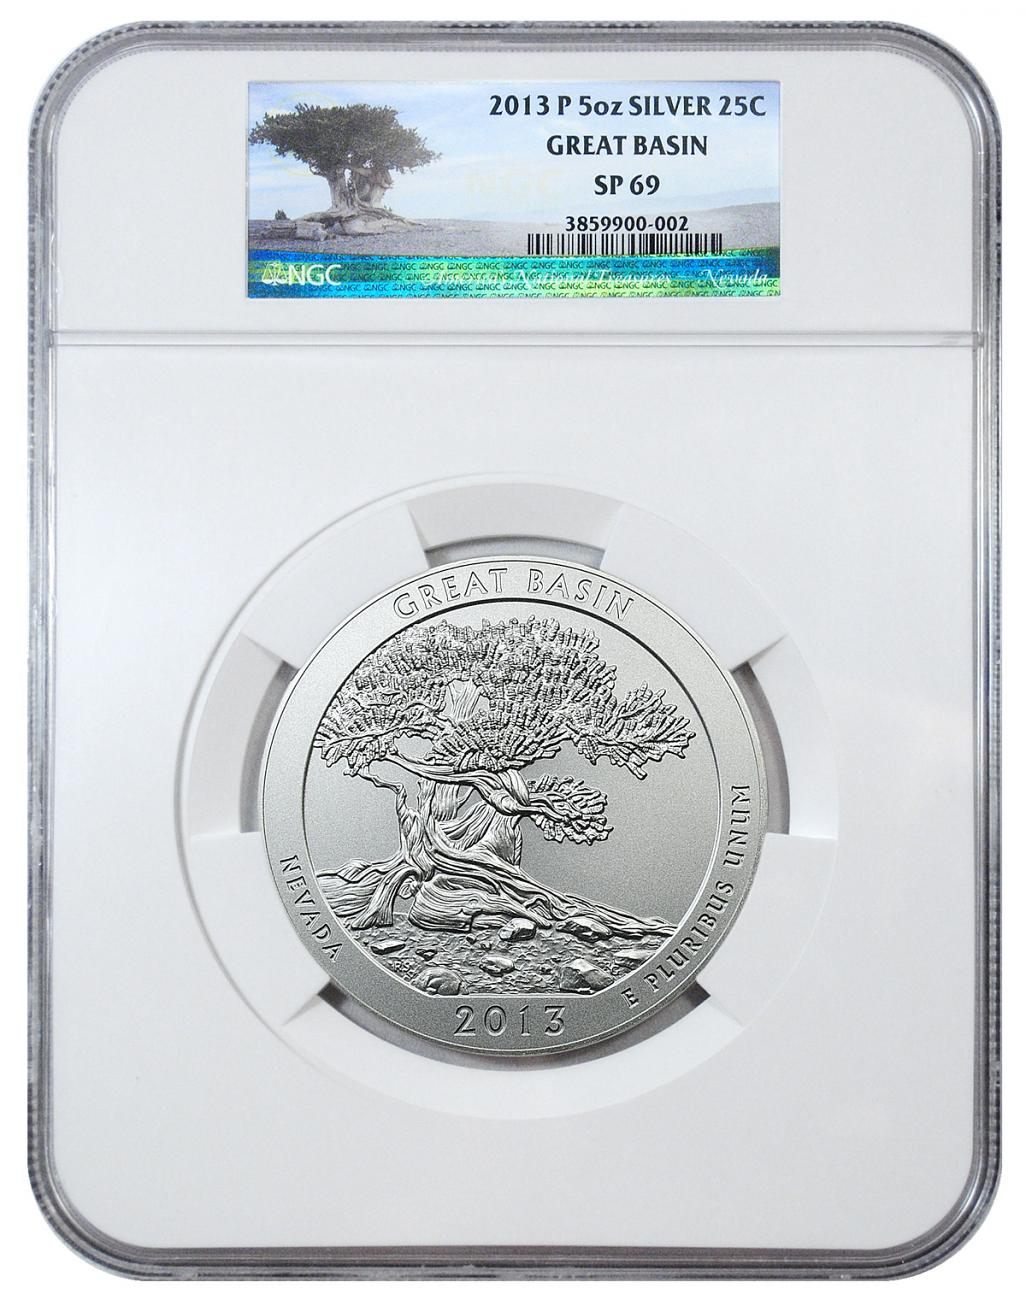 2013-P Great Basin 5 oz. Silver America the Beautiful Specimen Coin NGC SP69